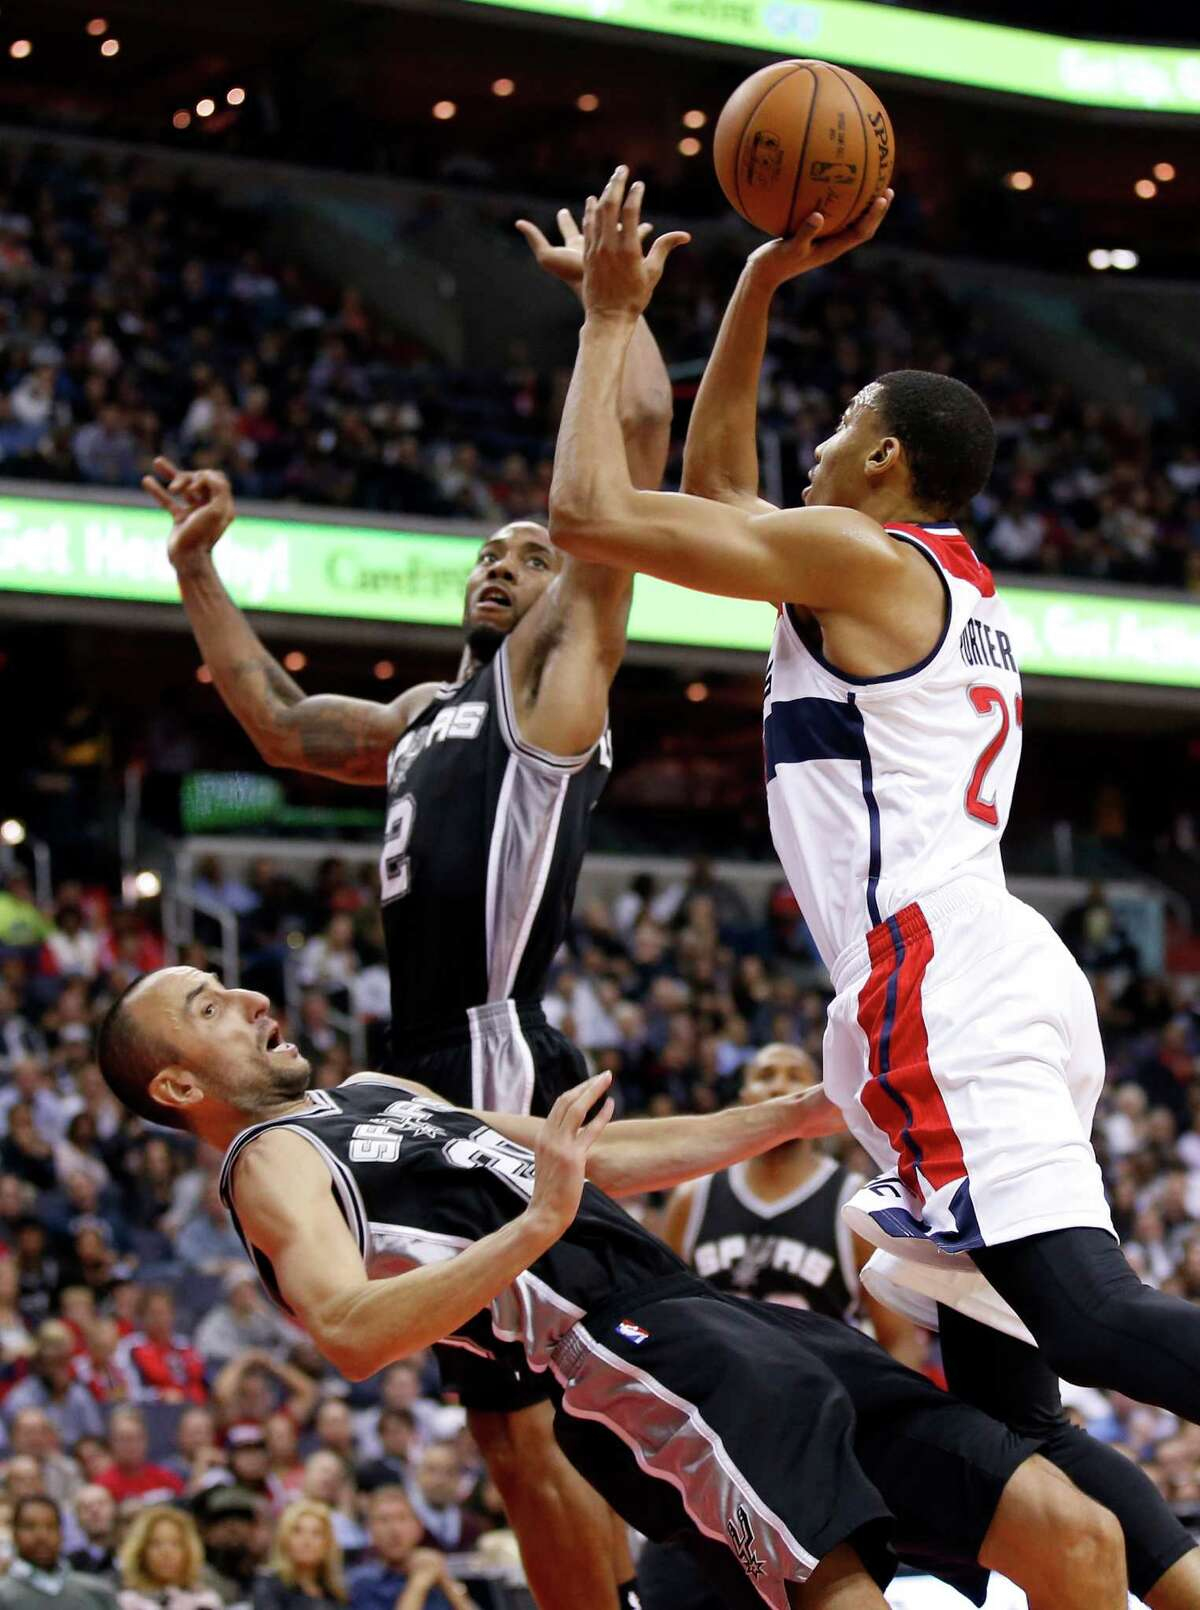 Spurs guard Manu Ginobili draws a charge from Washington Wizards forward Otto Porter Jr. with forward Kawhi Leonard nearby during the second half on Nov. 4, 2015, in Washington. The Wizards won 102-99.